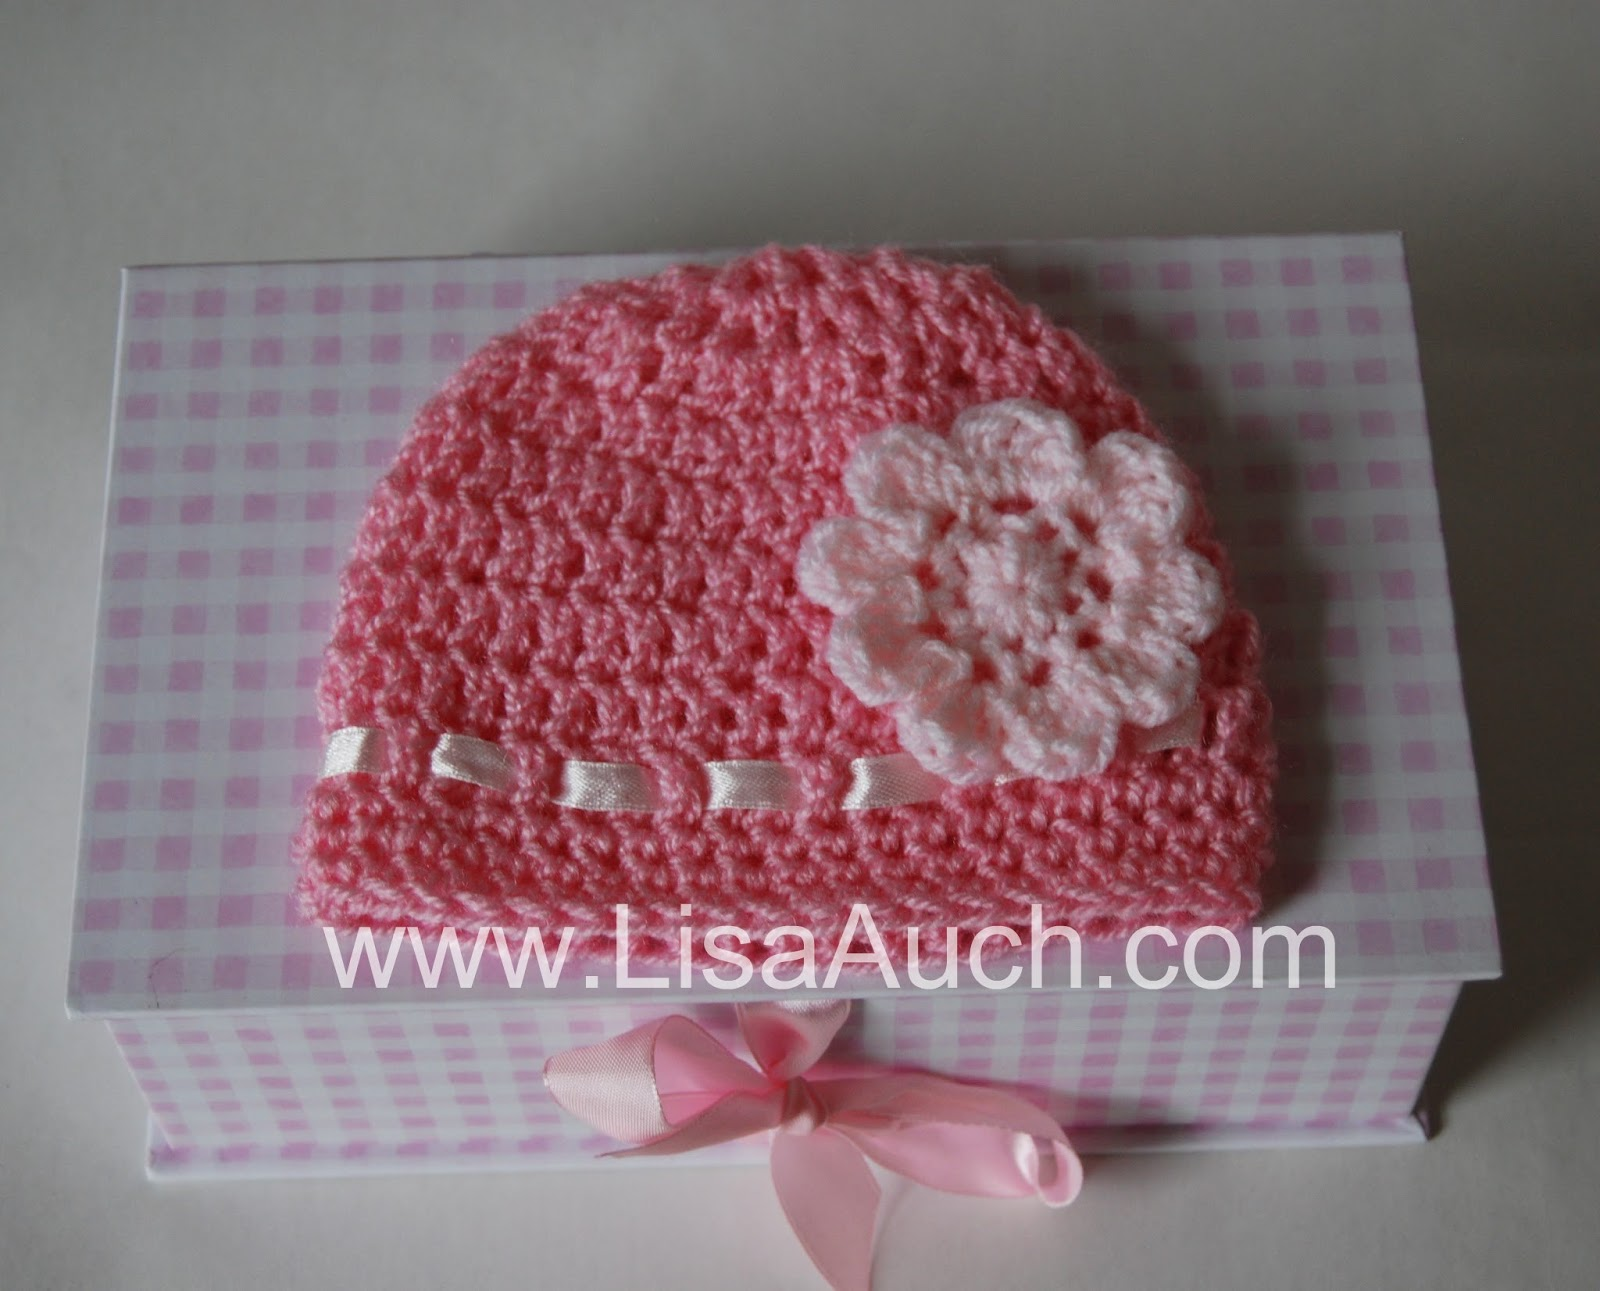 Free Crochet Pattern For A Newborn Hat : Crochet Baby Shoes Patterns Search Results Calendar 2015